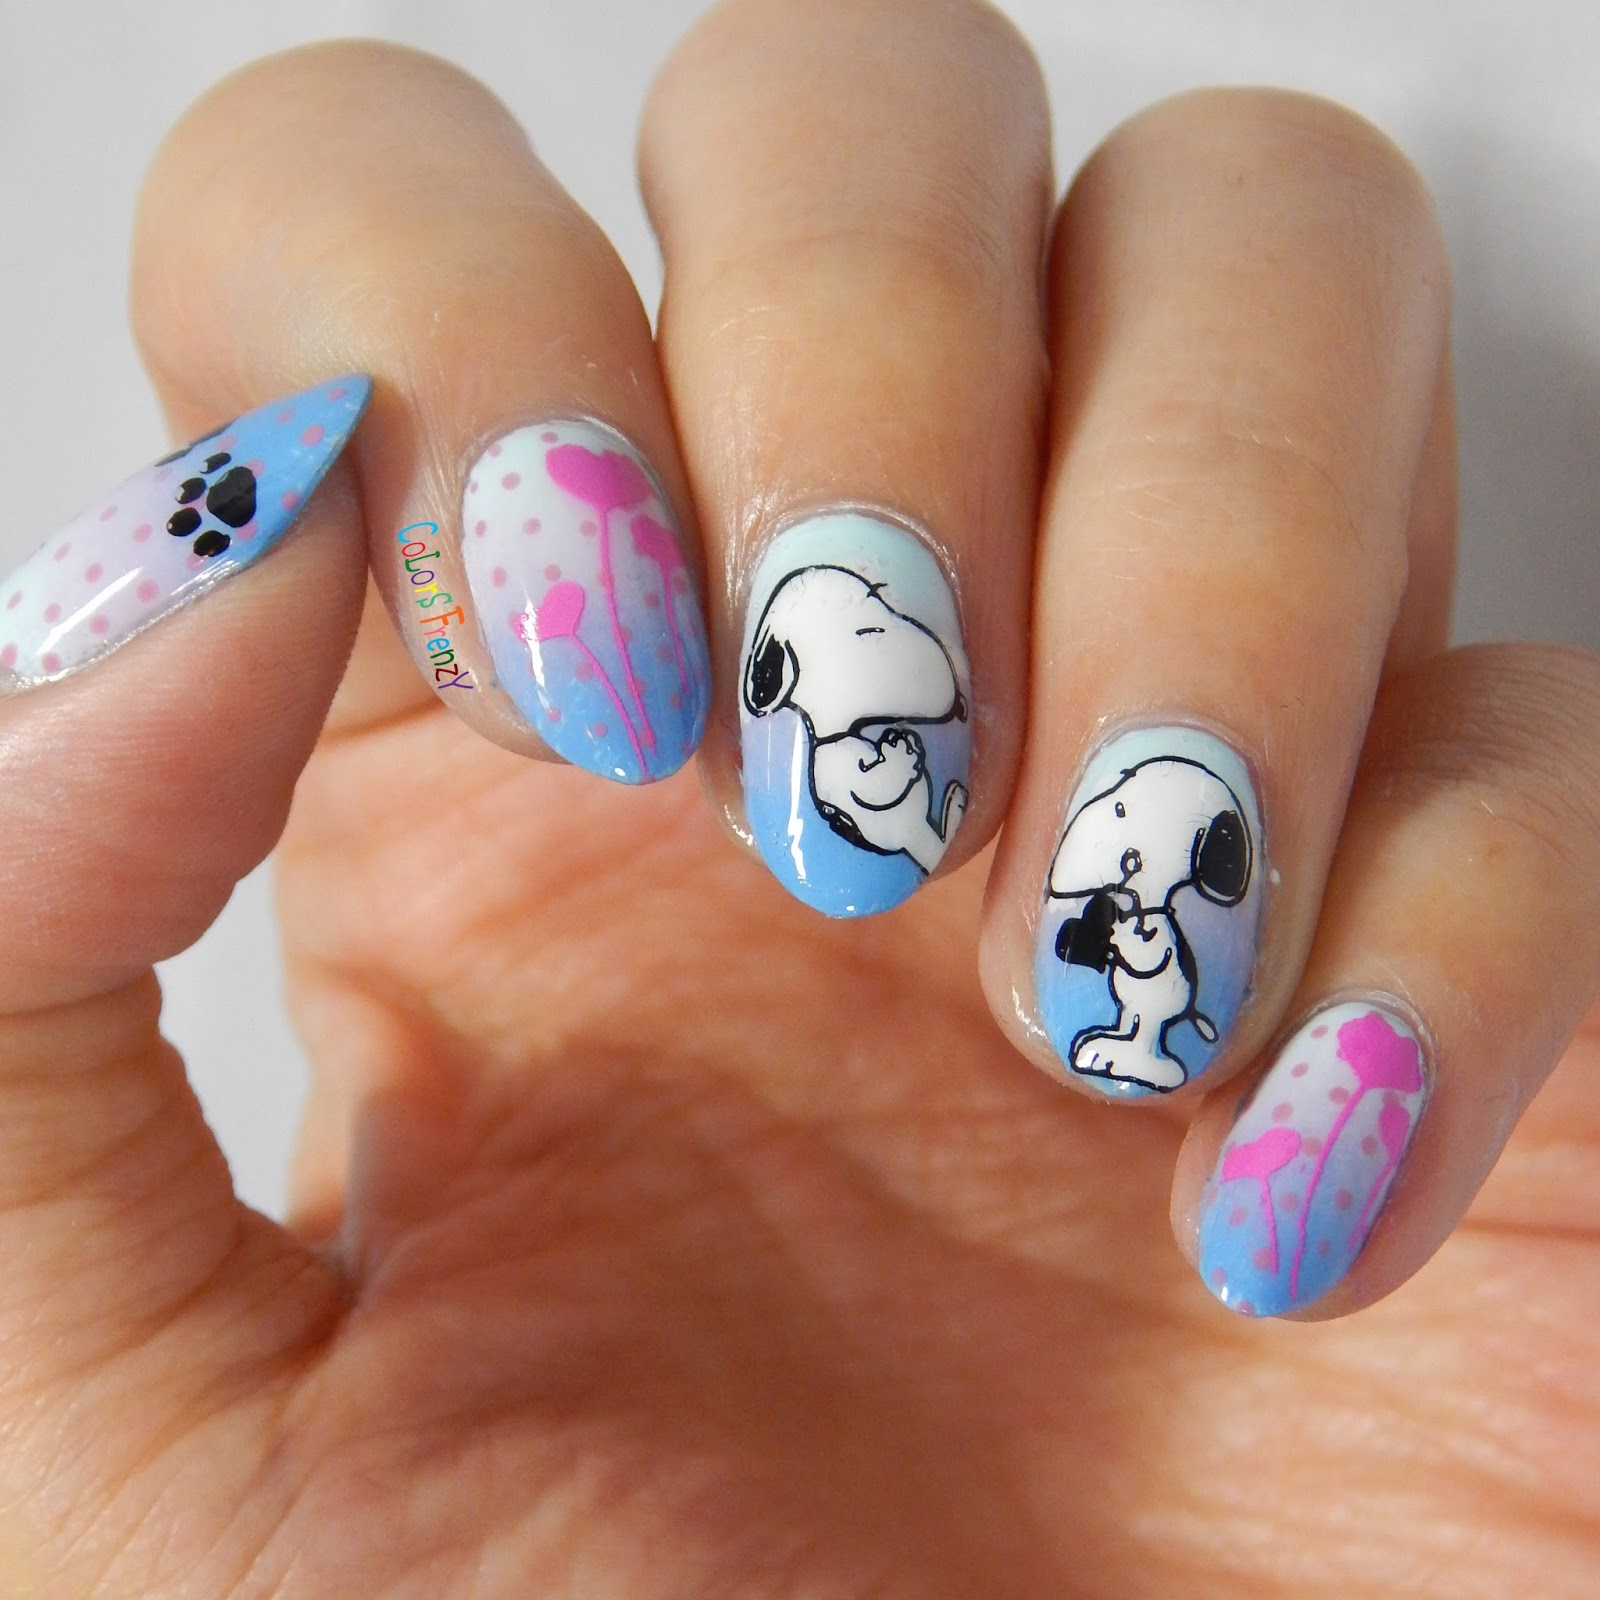 Colors frenzy born pretty store stamping plate review snoopy the background for my stamping is a gradient using picture polish sky opi rumples wiggin and orly snowcone the dots on my thumb index and pinkie are prinsesfo Choice Image